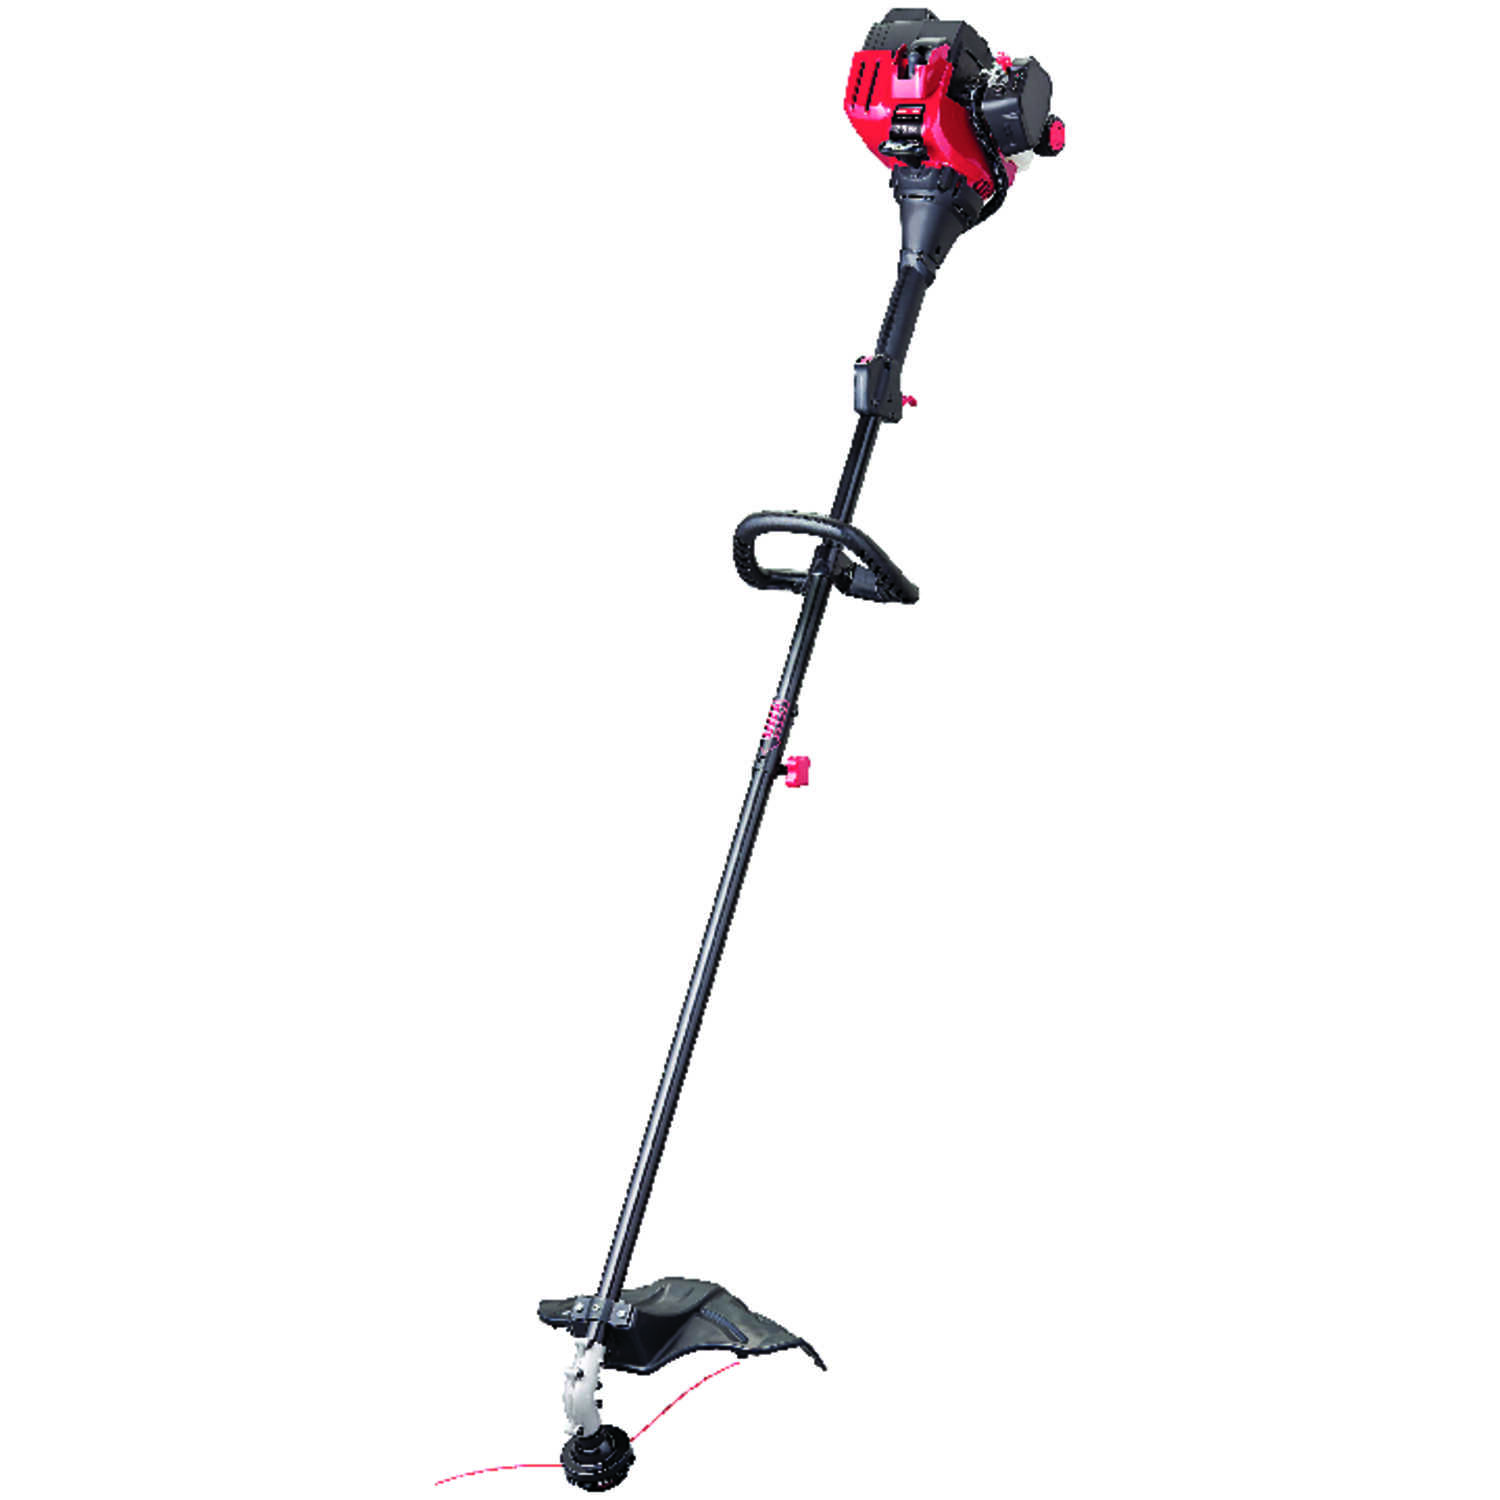 Craftsman  Gasoline  String Trimmer  Straight Shaft